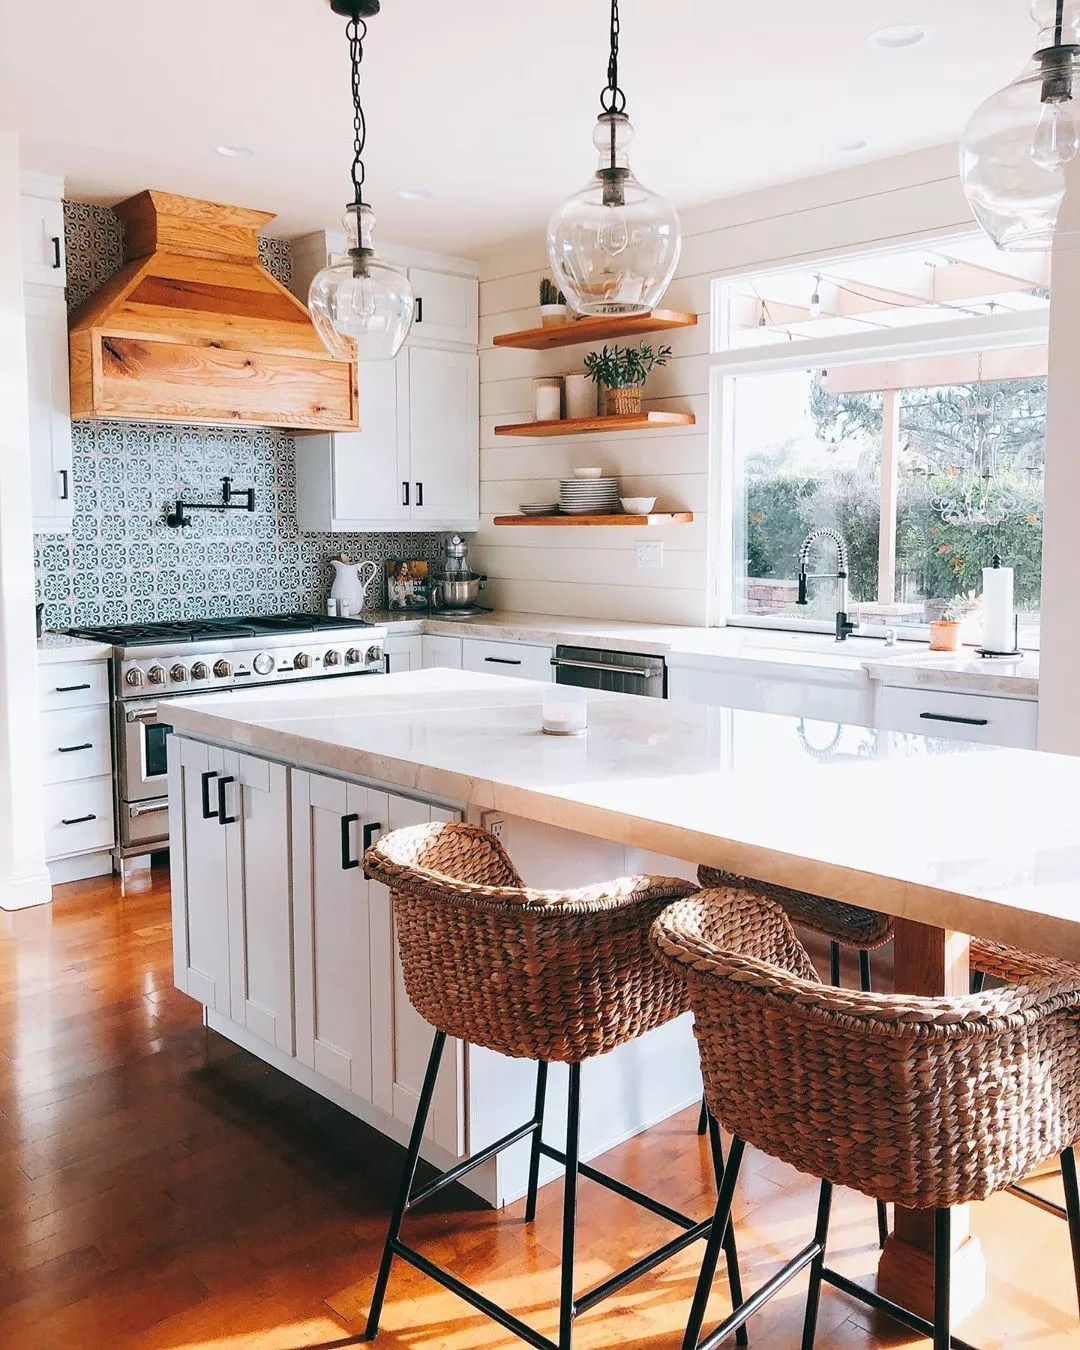 Modern kitchen. Photo by Instagram user @theressnowplacelikehome